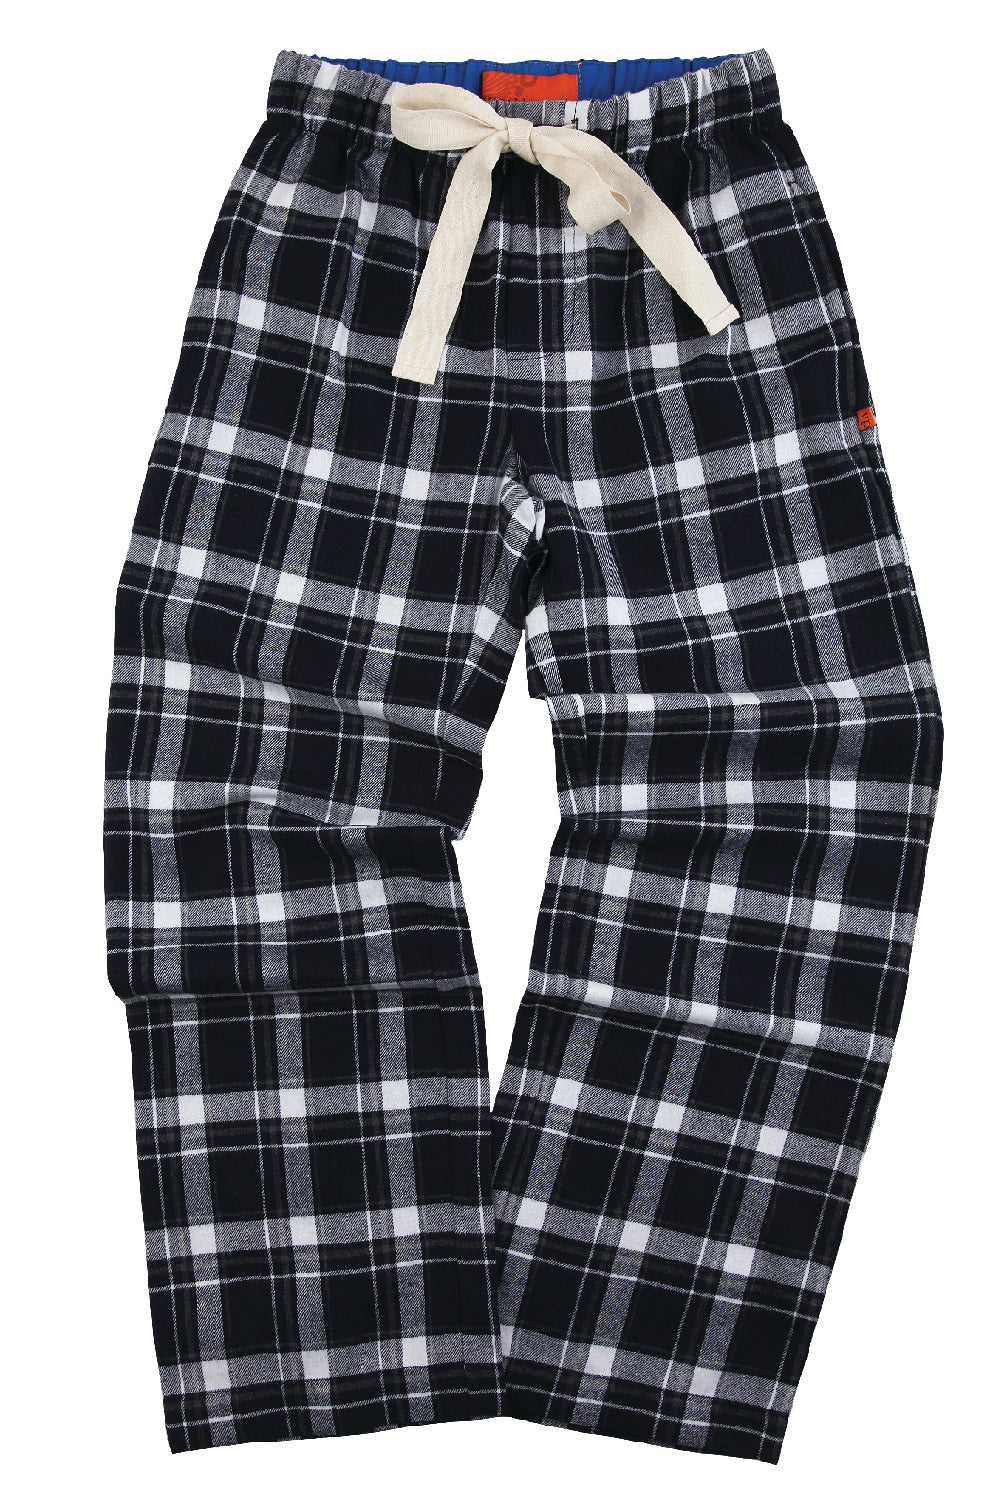 KIRK Unisex trousers for lounge and sleepwear ages 9-16 years